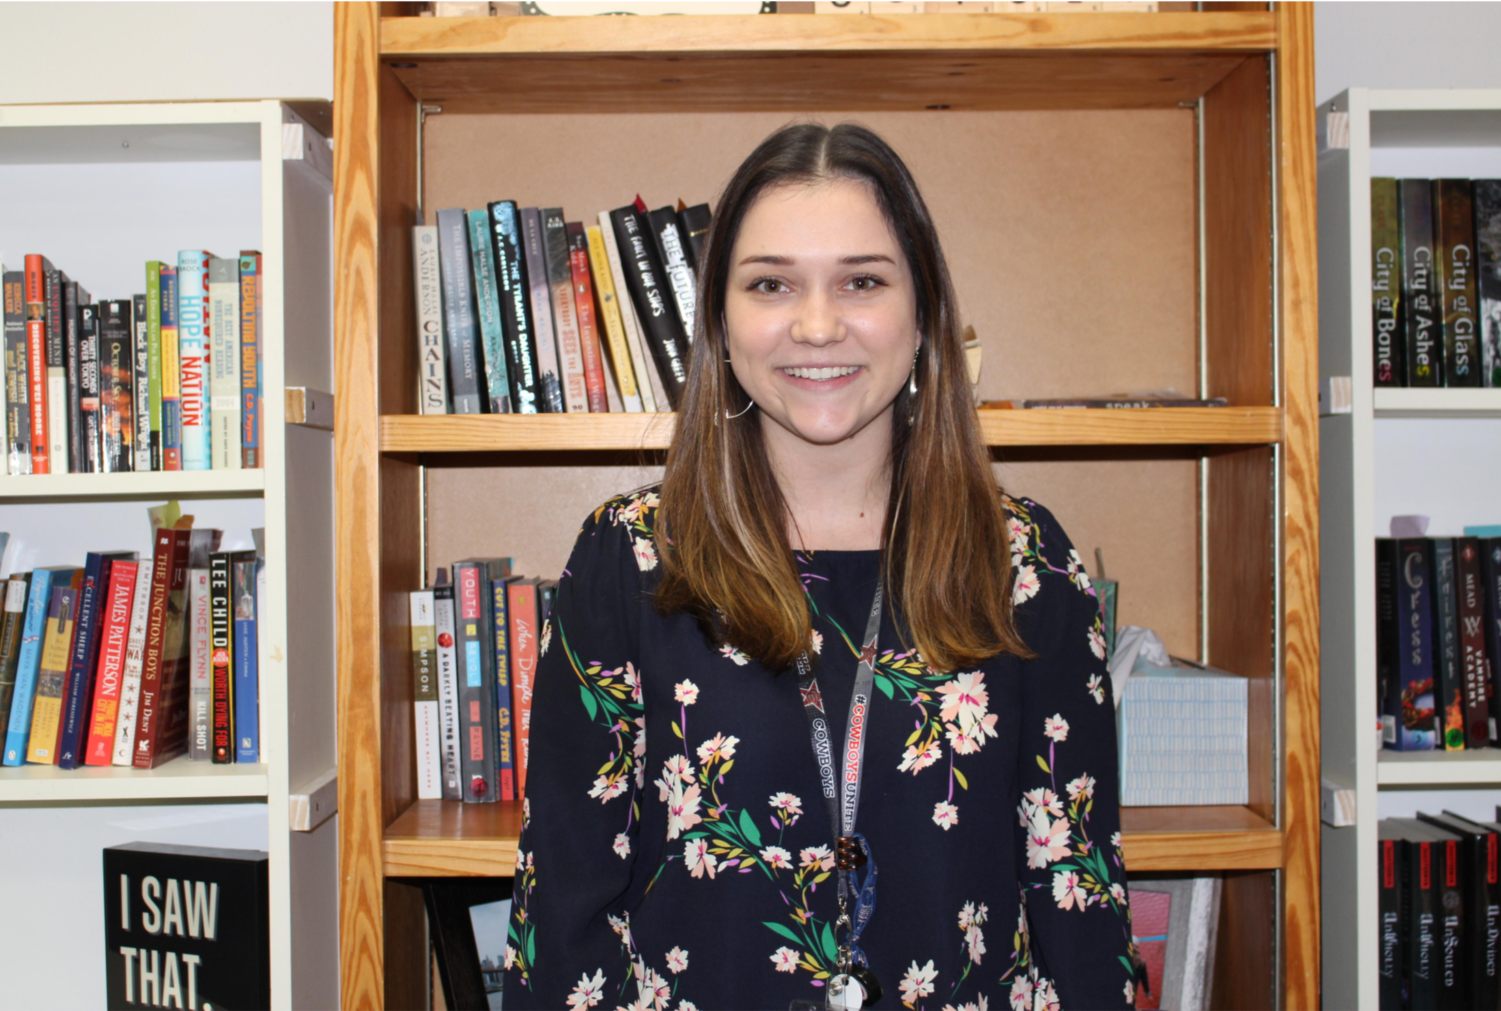 Mariah Sanchez is new English Teacher at Coppell ISD. Her transition into the new district is fueled through her passion for her learners.